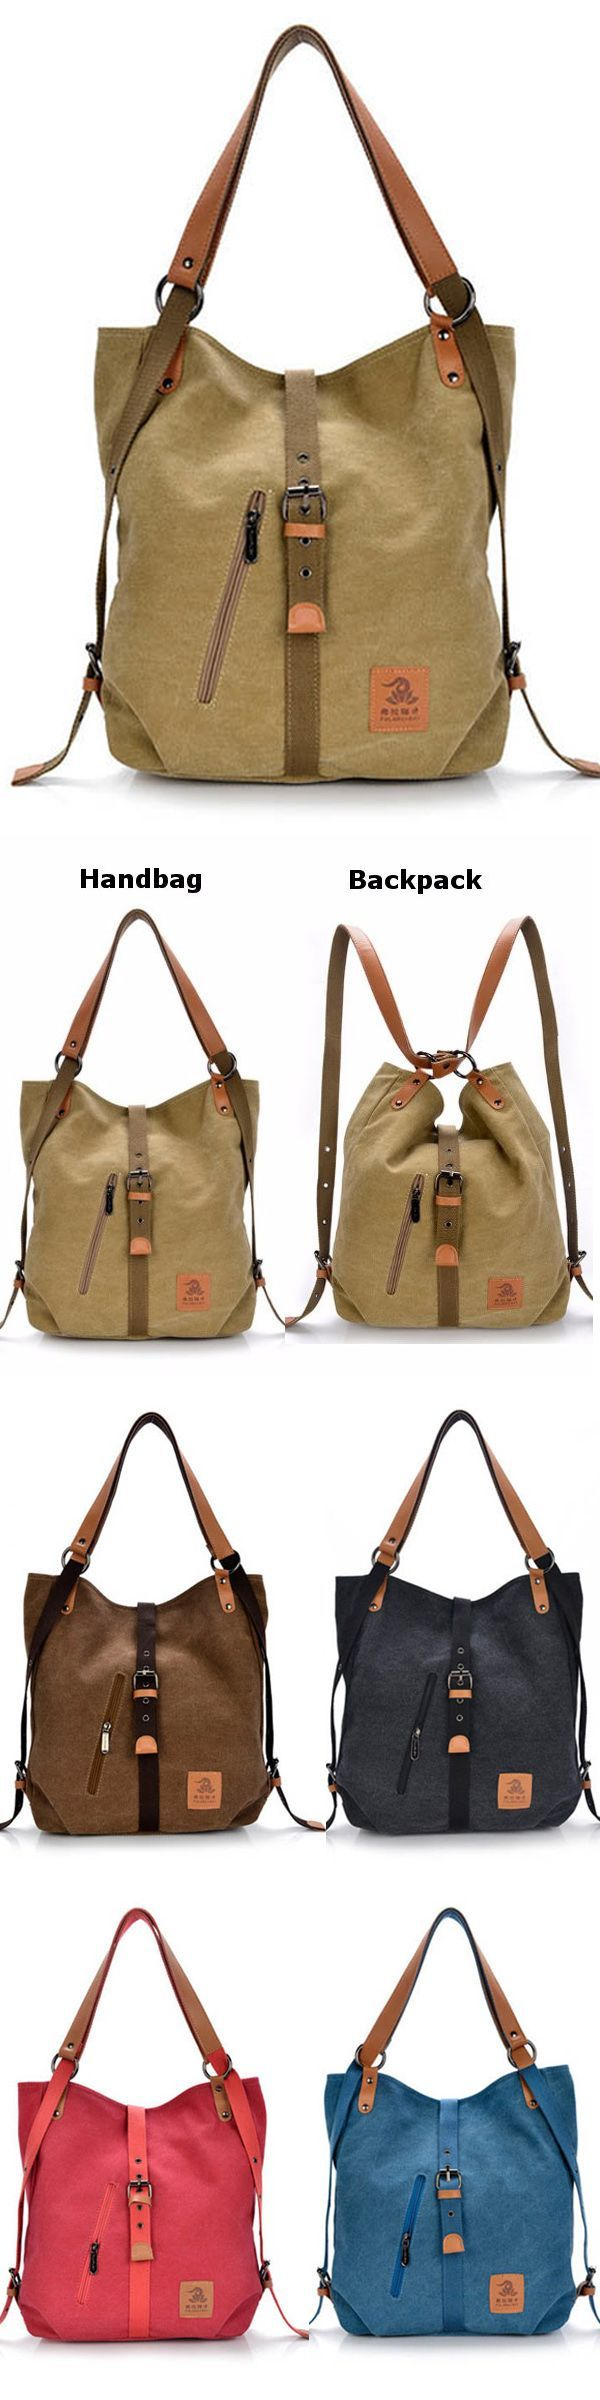 US$28.66  Women Canvas Casual Multifunctional Microfiber Leather Large Capacity Handbag Shoulder Bags Backpack